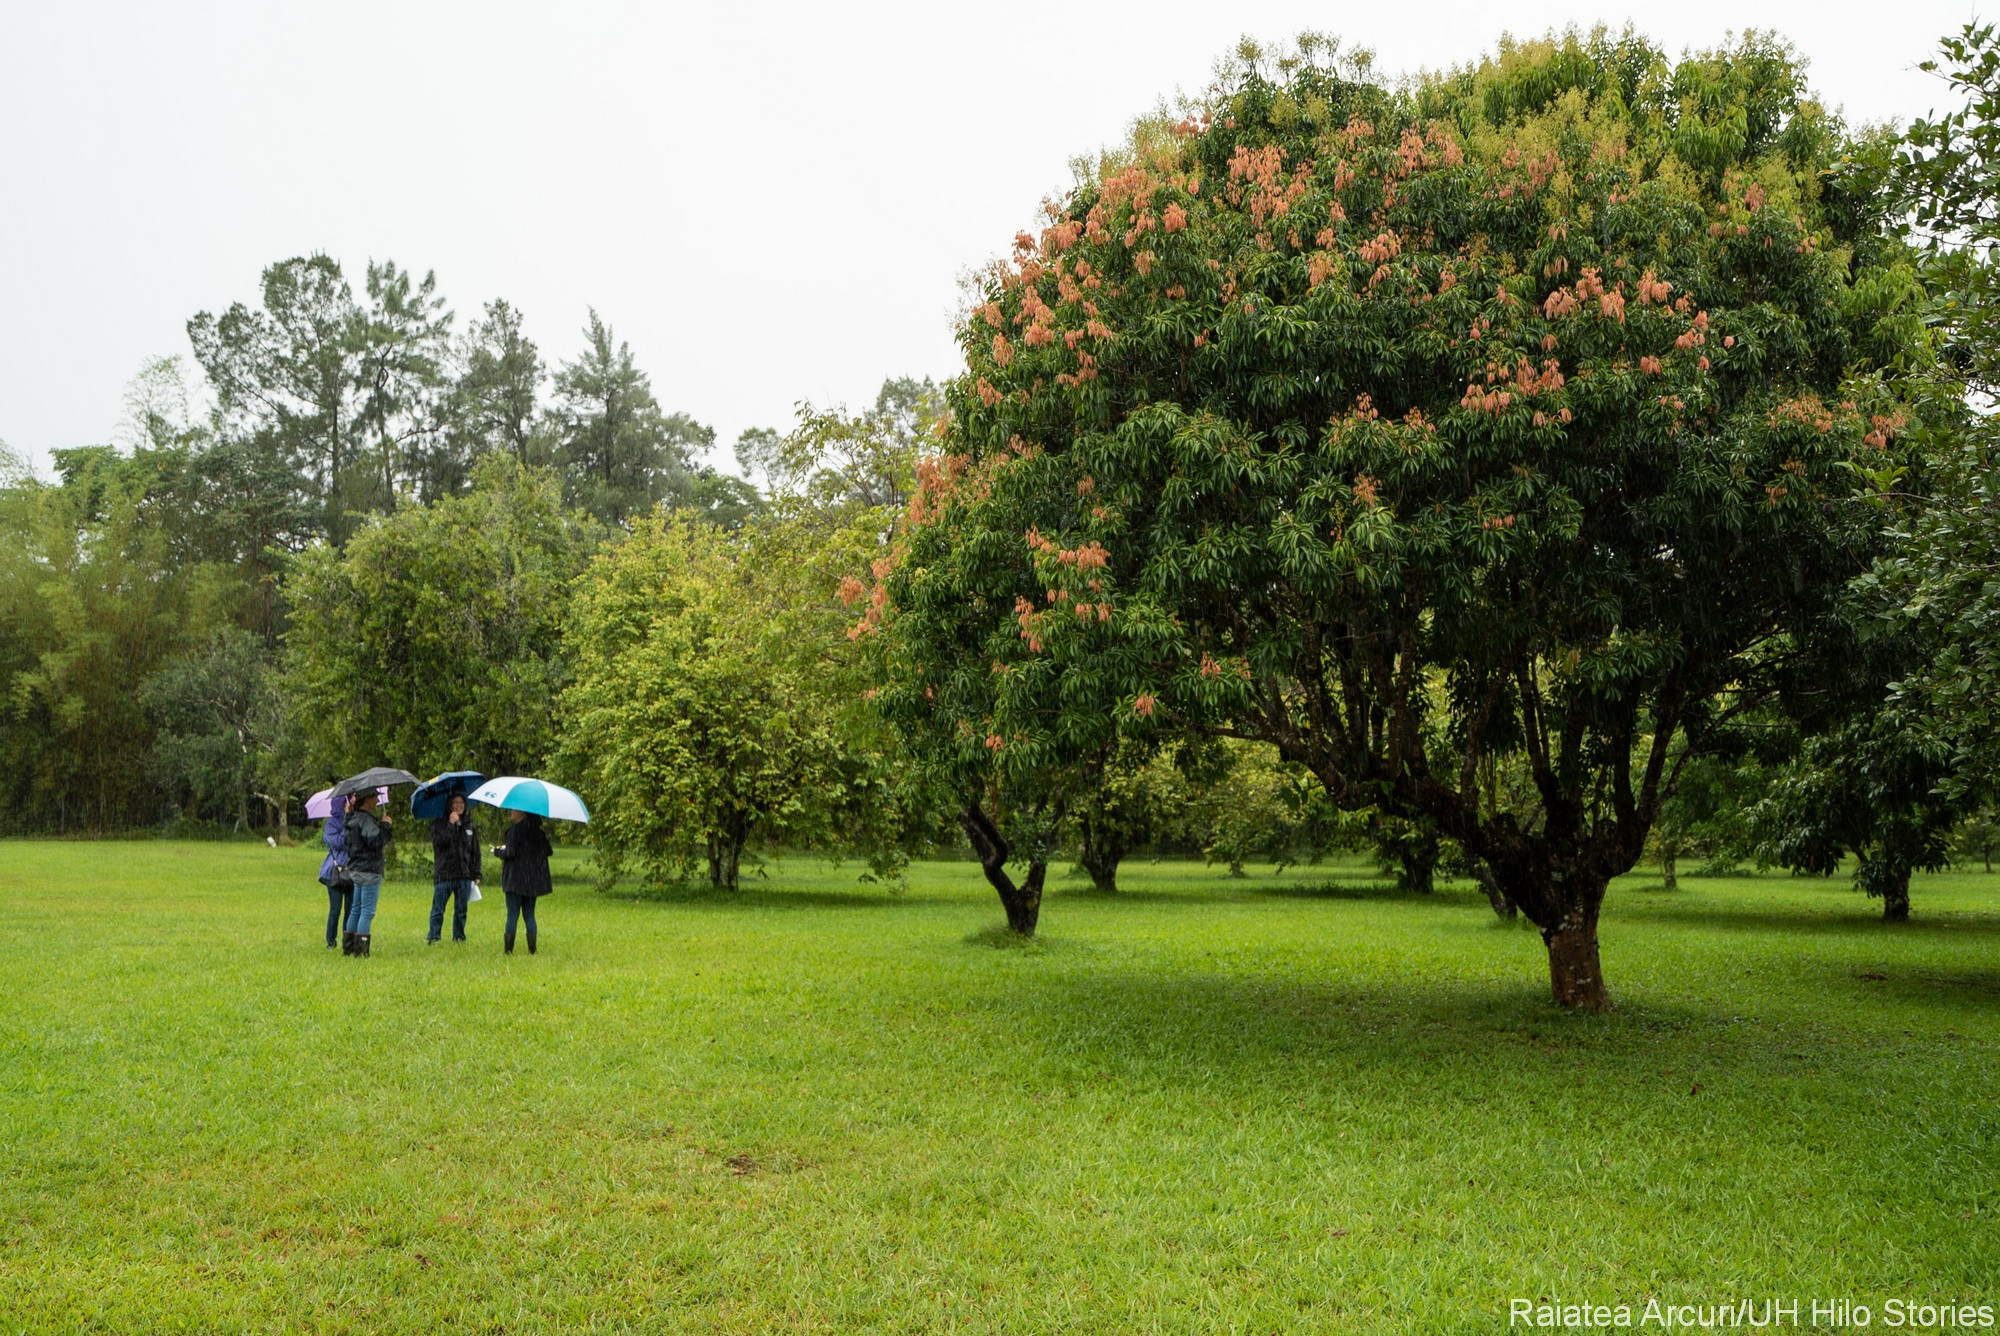 A group of four with umbrellas in the orchard.